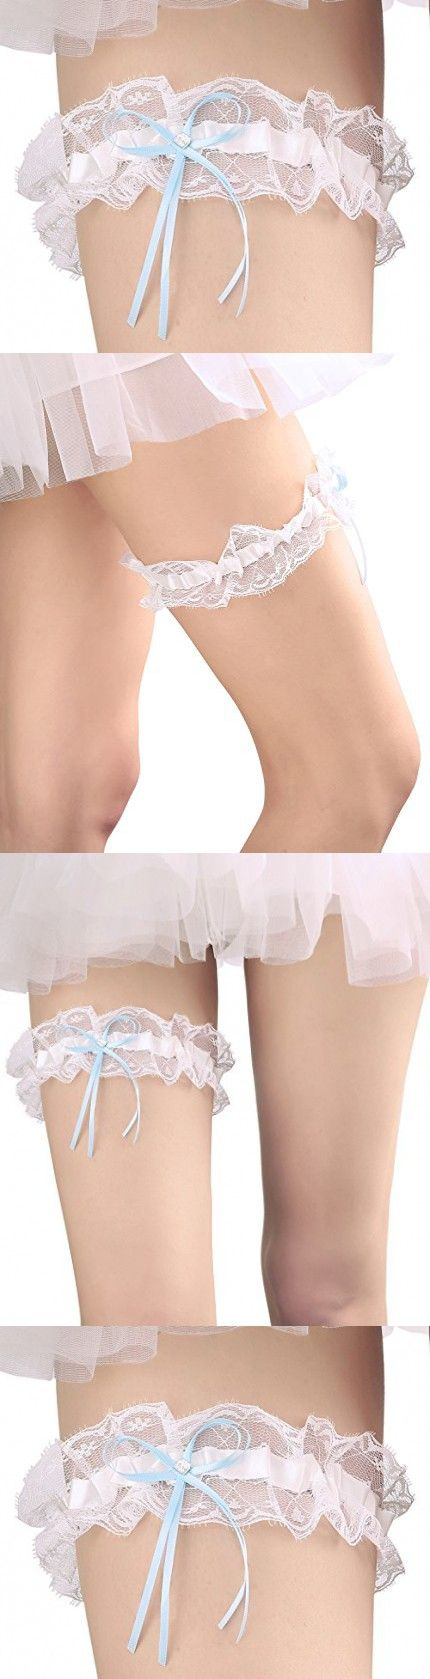 MeryaDress Lace Wedding Garter for Bride Stretch Crystal Prom Garter with Crystal Bow Detail Blue-Ivory